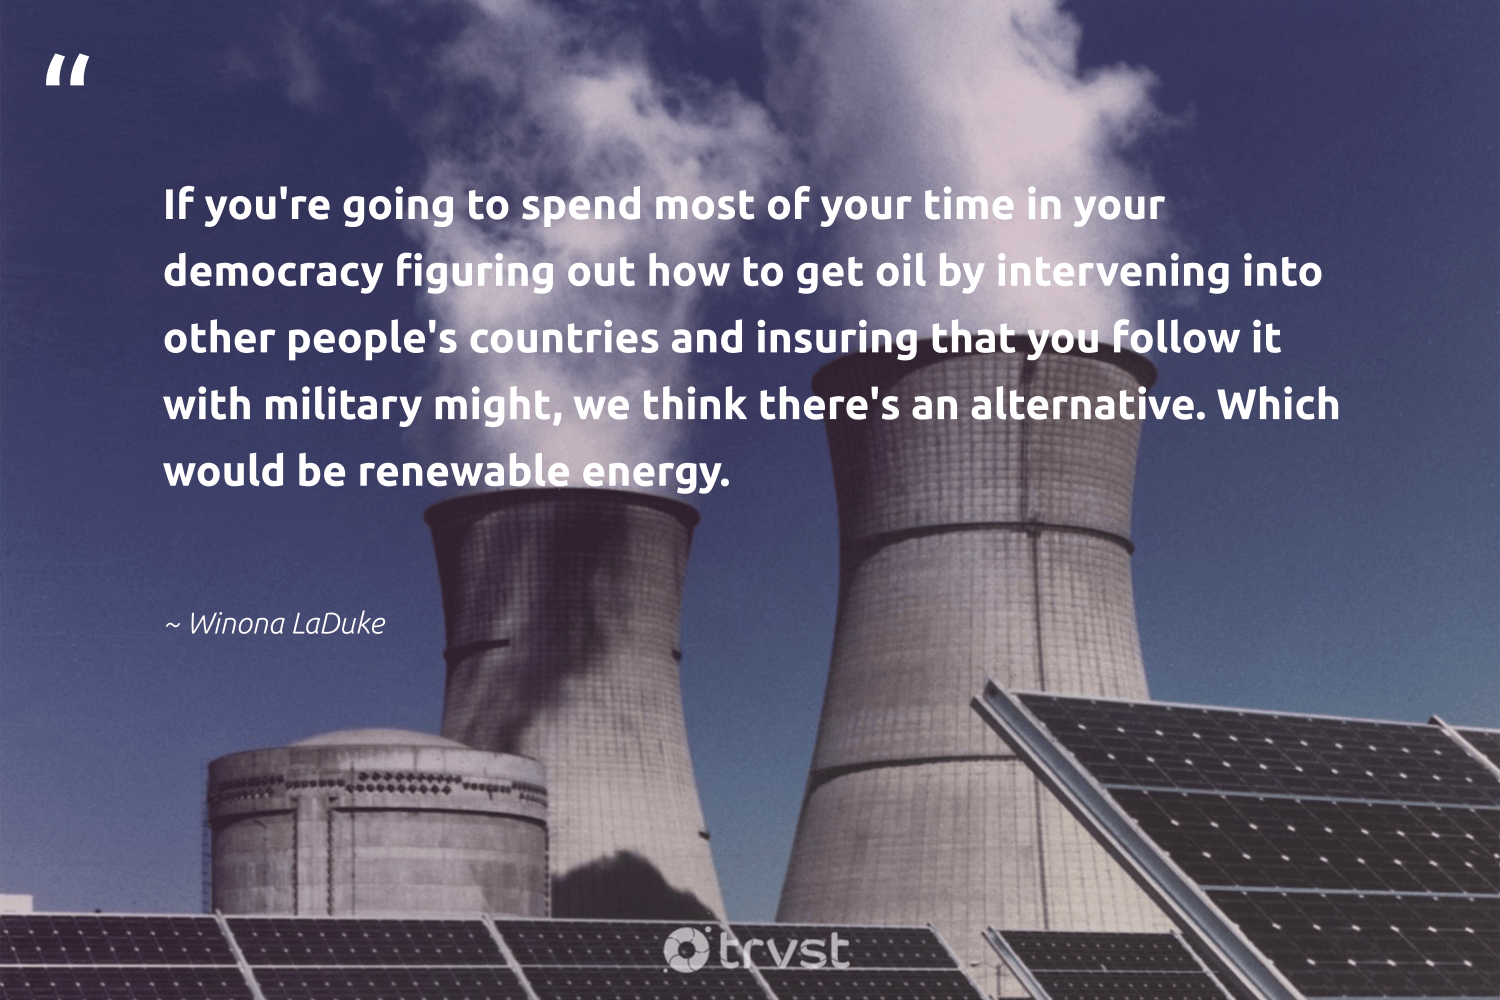 """""""If you're going to spend most of your time in your democracy figuring out how to get oil by intervening into other people's countries and insuring that you follow it with military might, we think there's an alternative. Which would be renewable energy.""""  - Winona LaDuke #trvst #quotes #renewableenergy #energy #renewable #oil #100percentclean #renewables #carbon #environmental #ecoconscious #greenenergy"""